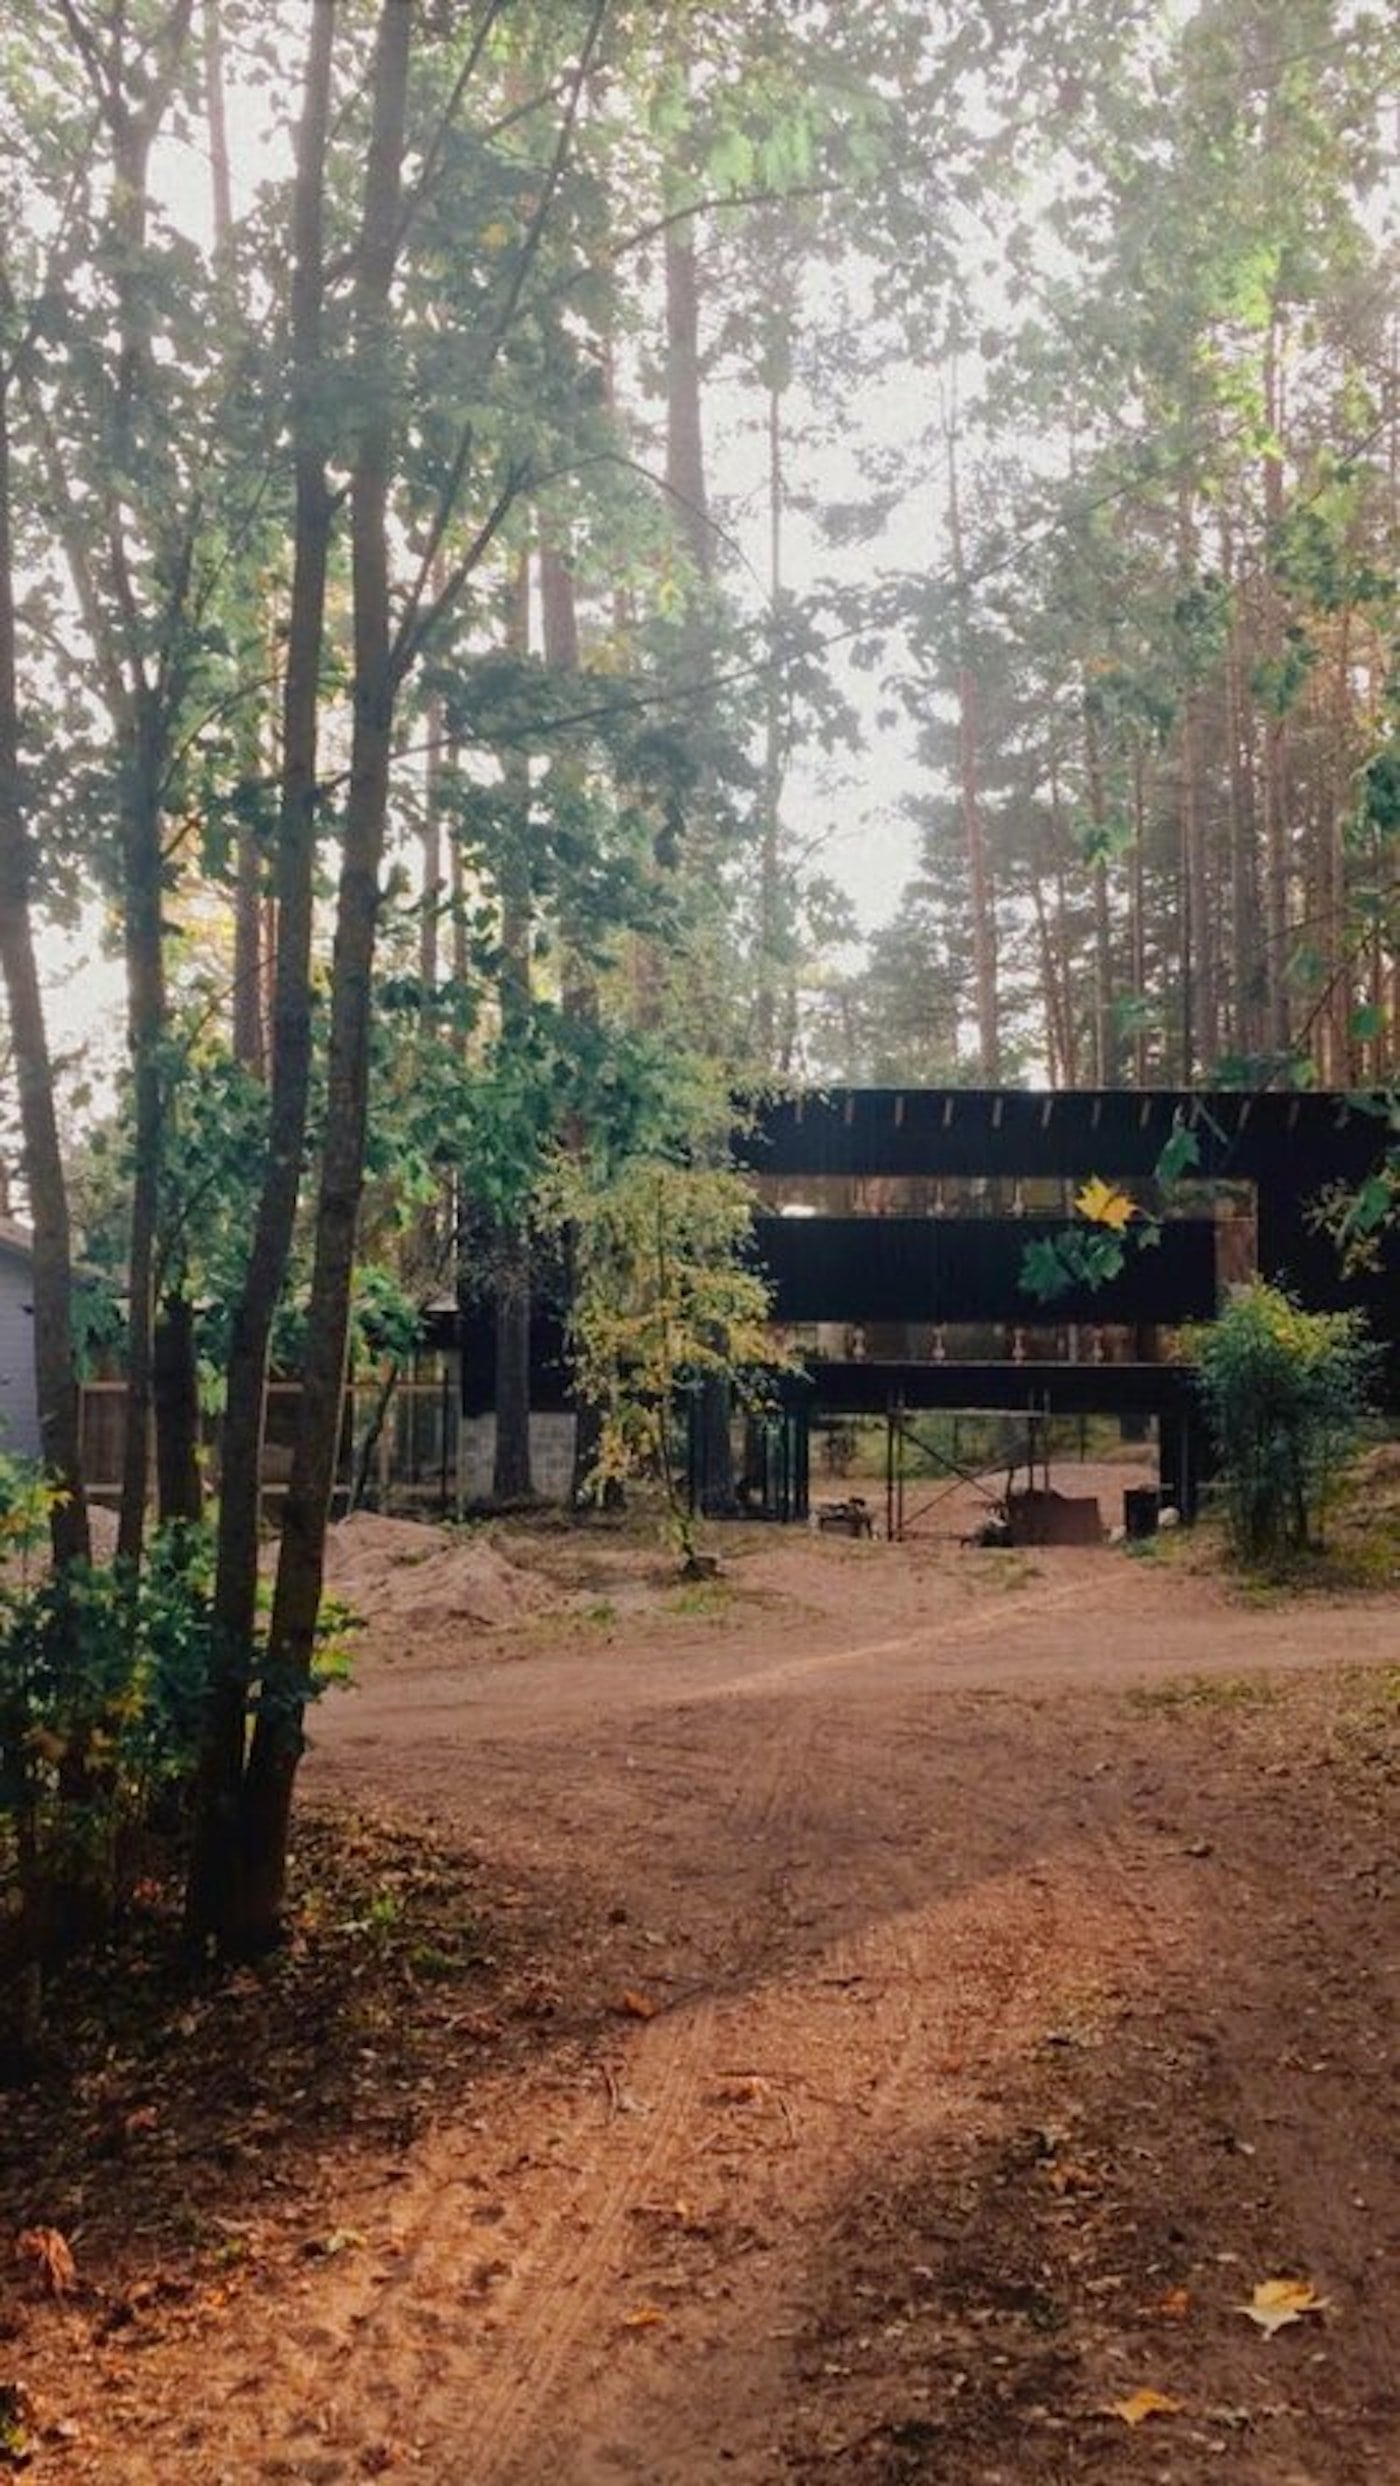 View through the forest towards black timber clad home